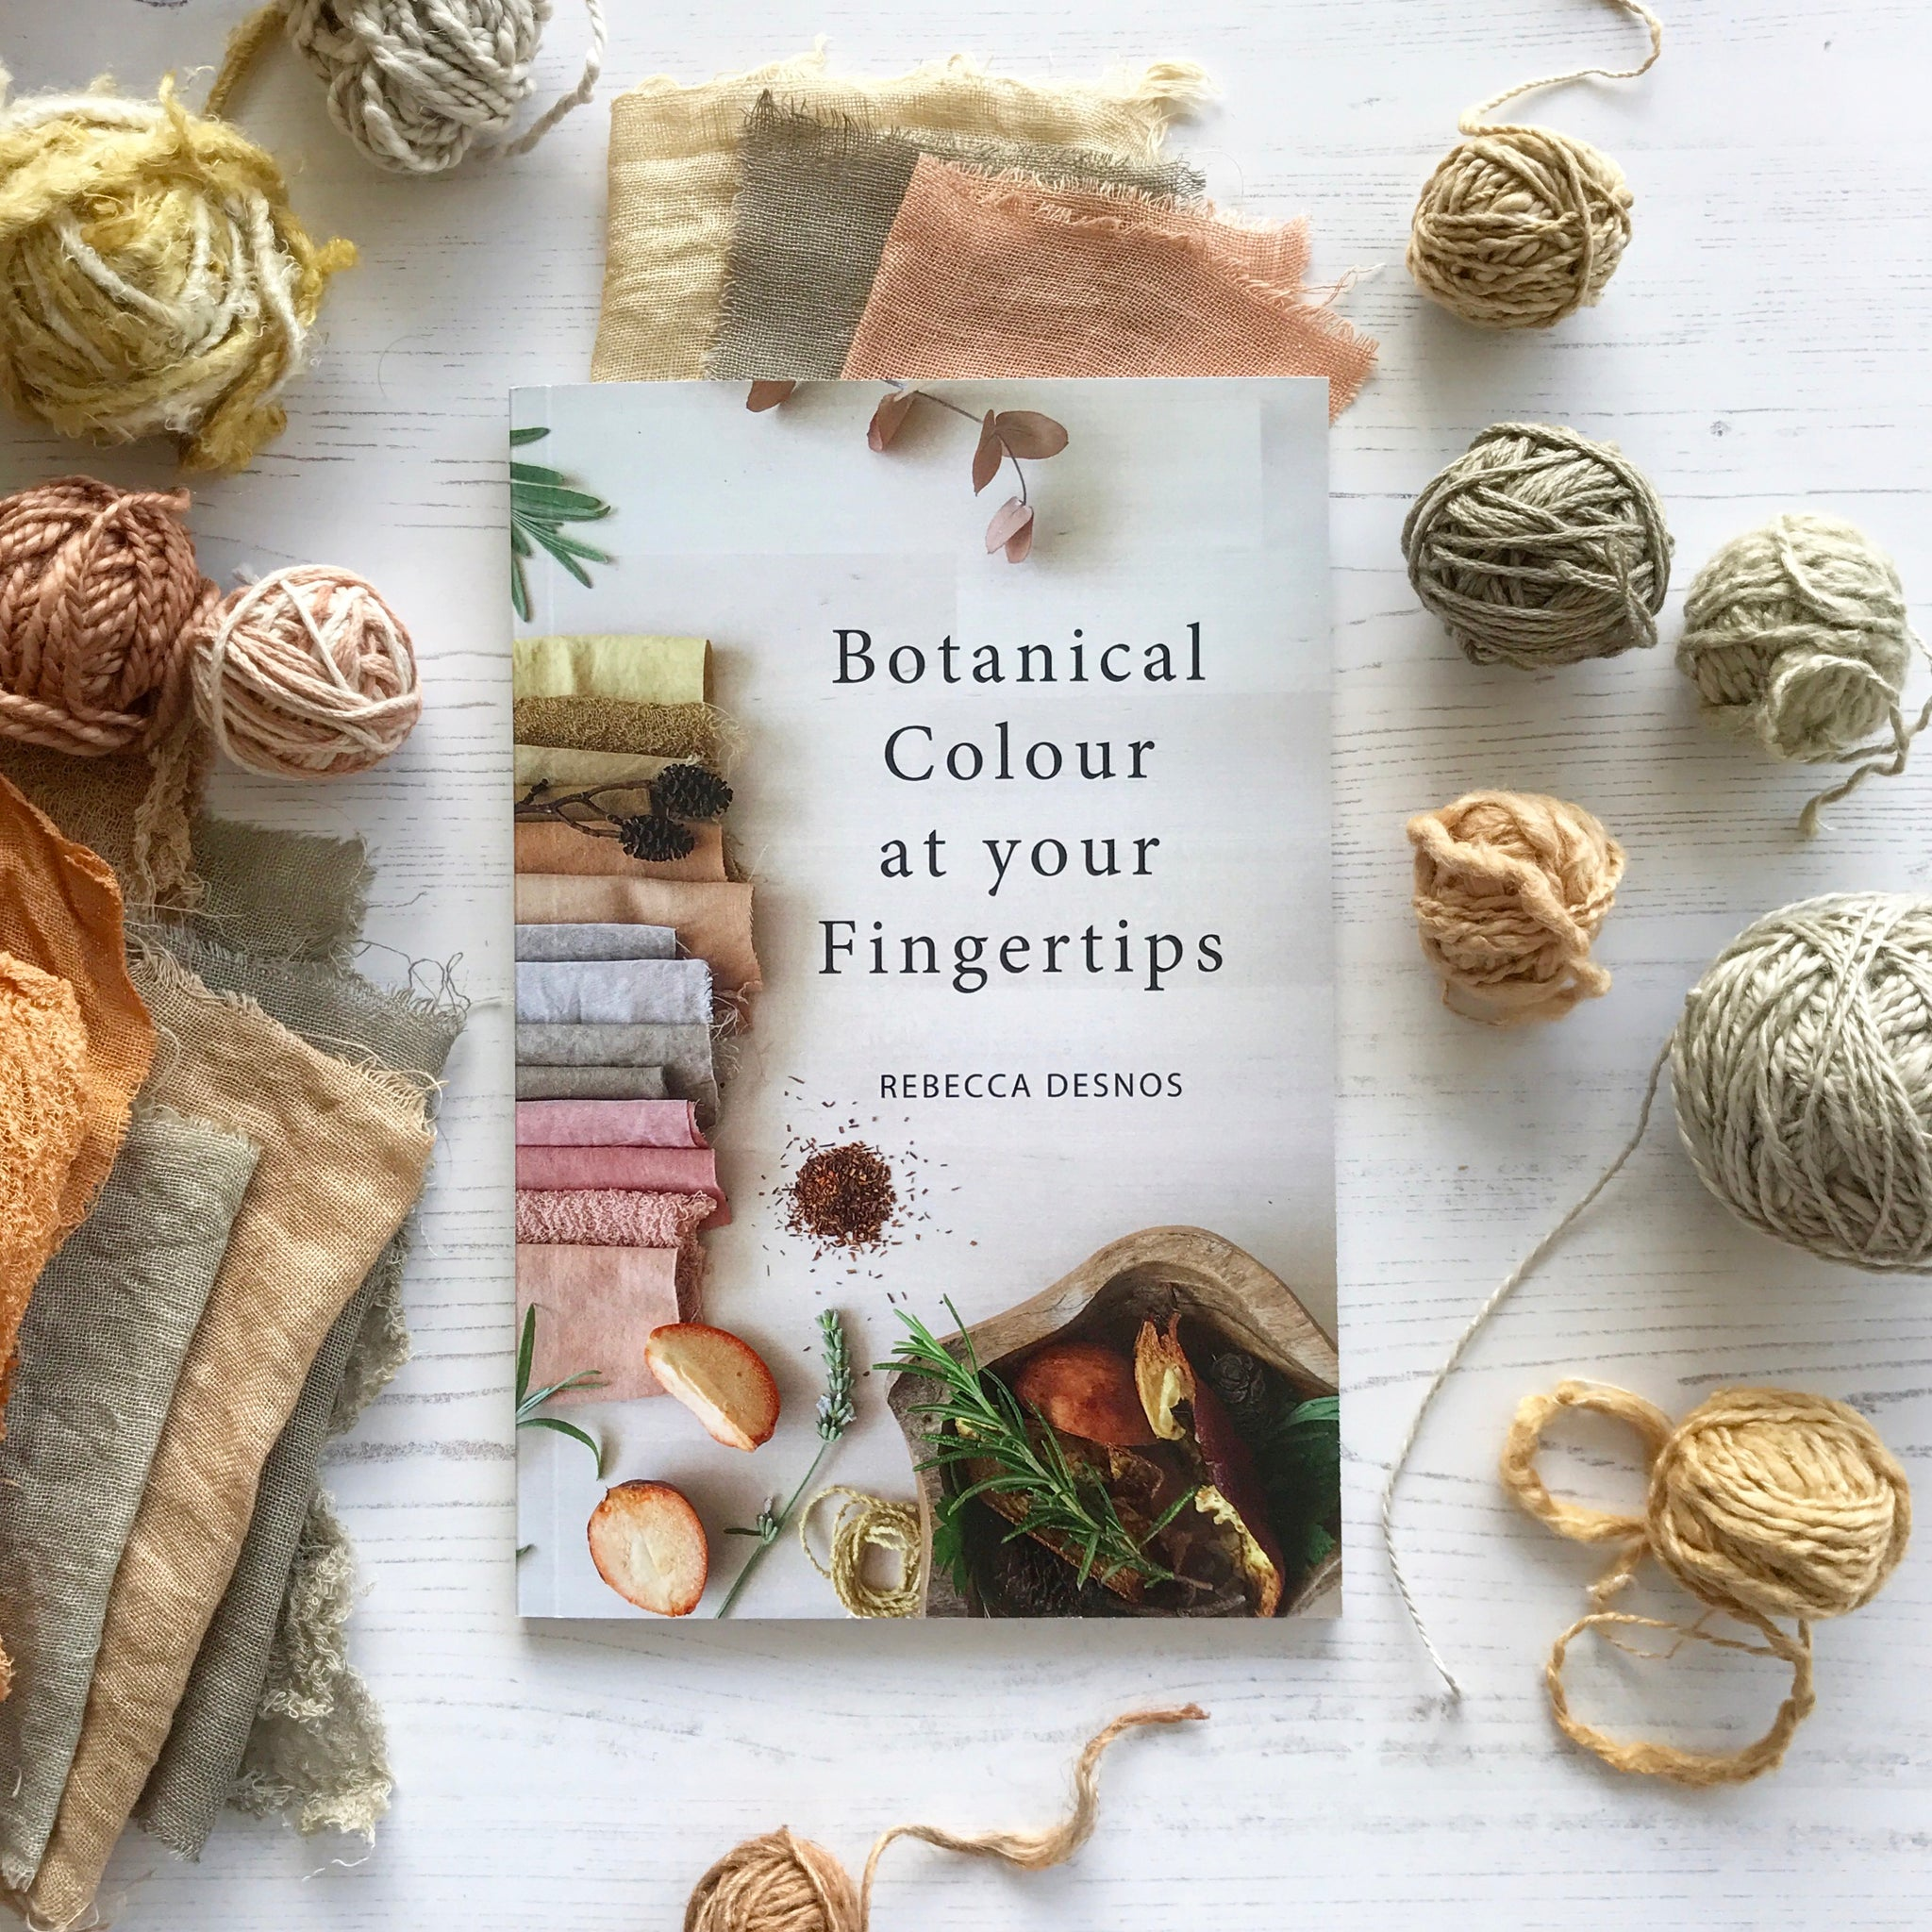 Botanical Colour at your Fingertips